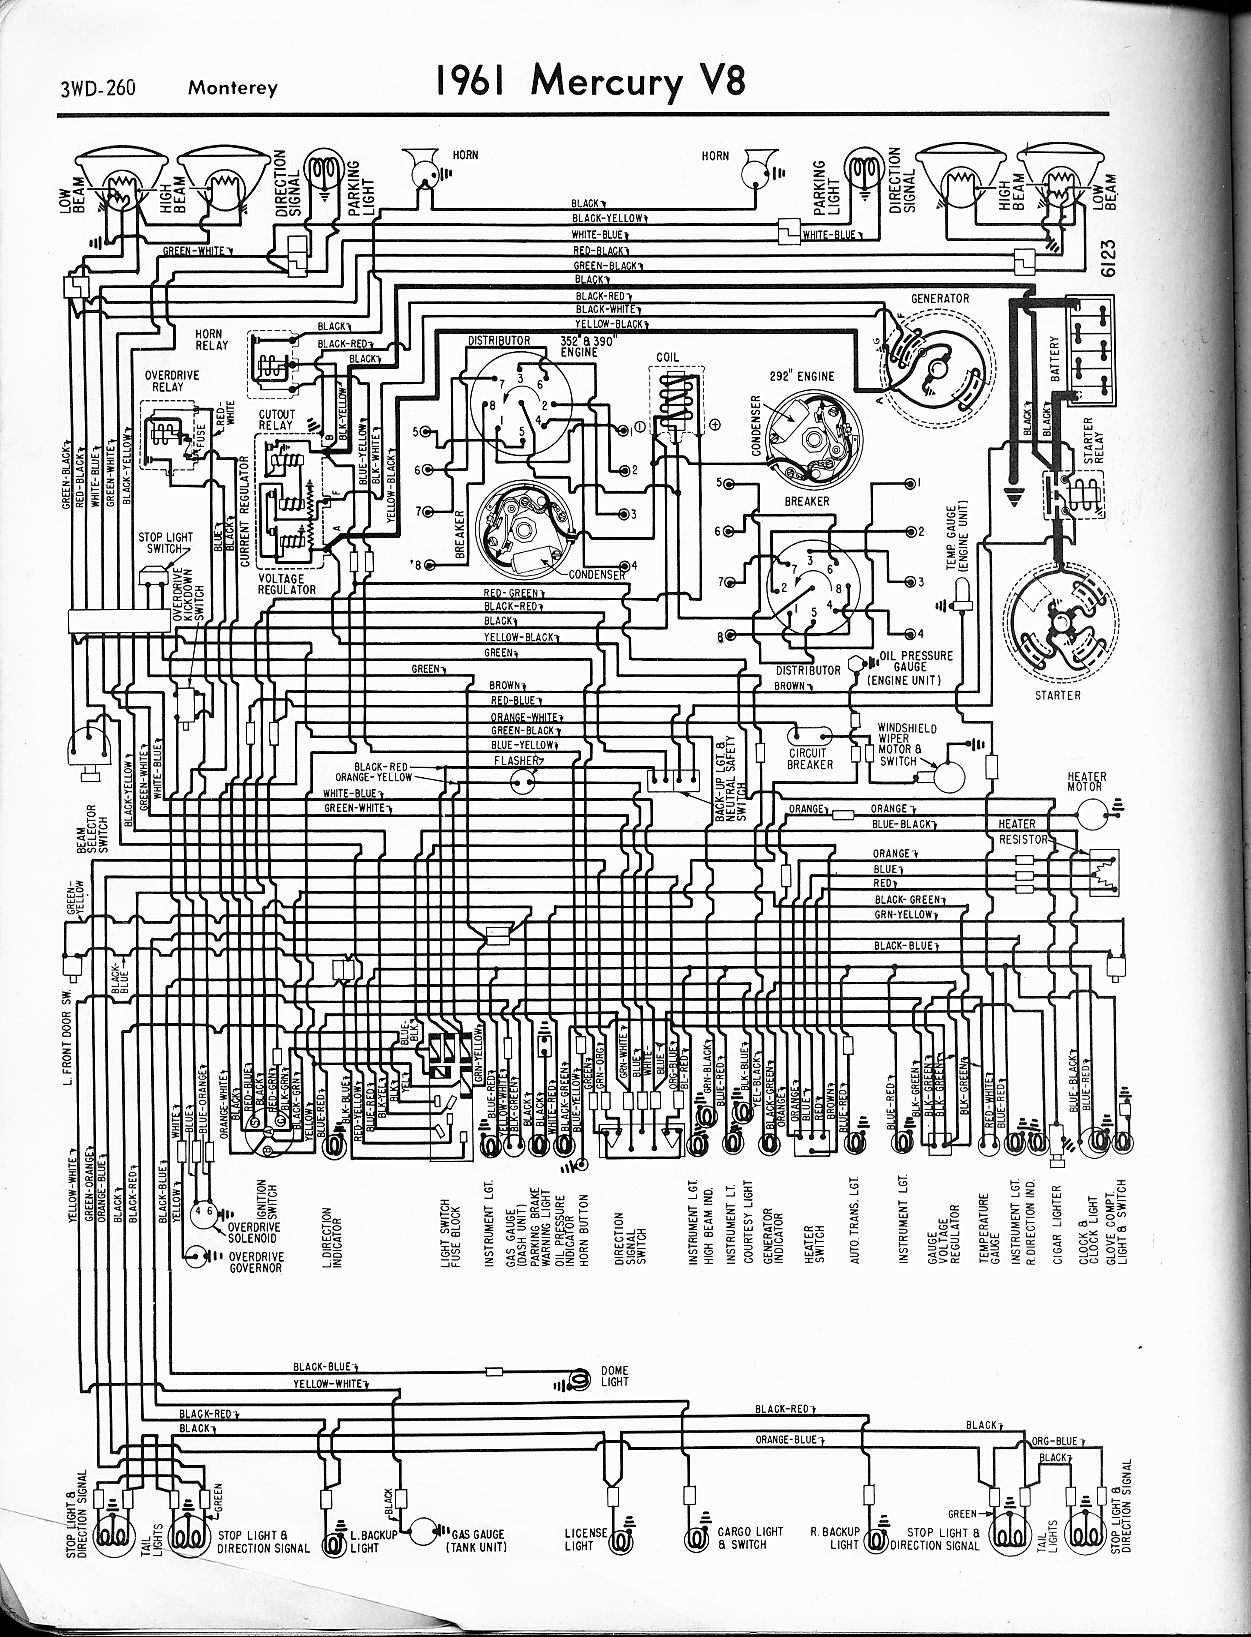 MWire5765 260 mercury wiring diagrams the old car manual project 1963 mercury comet wiring diagram at fashall.co